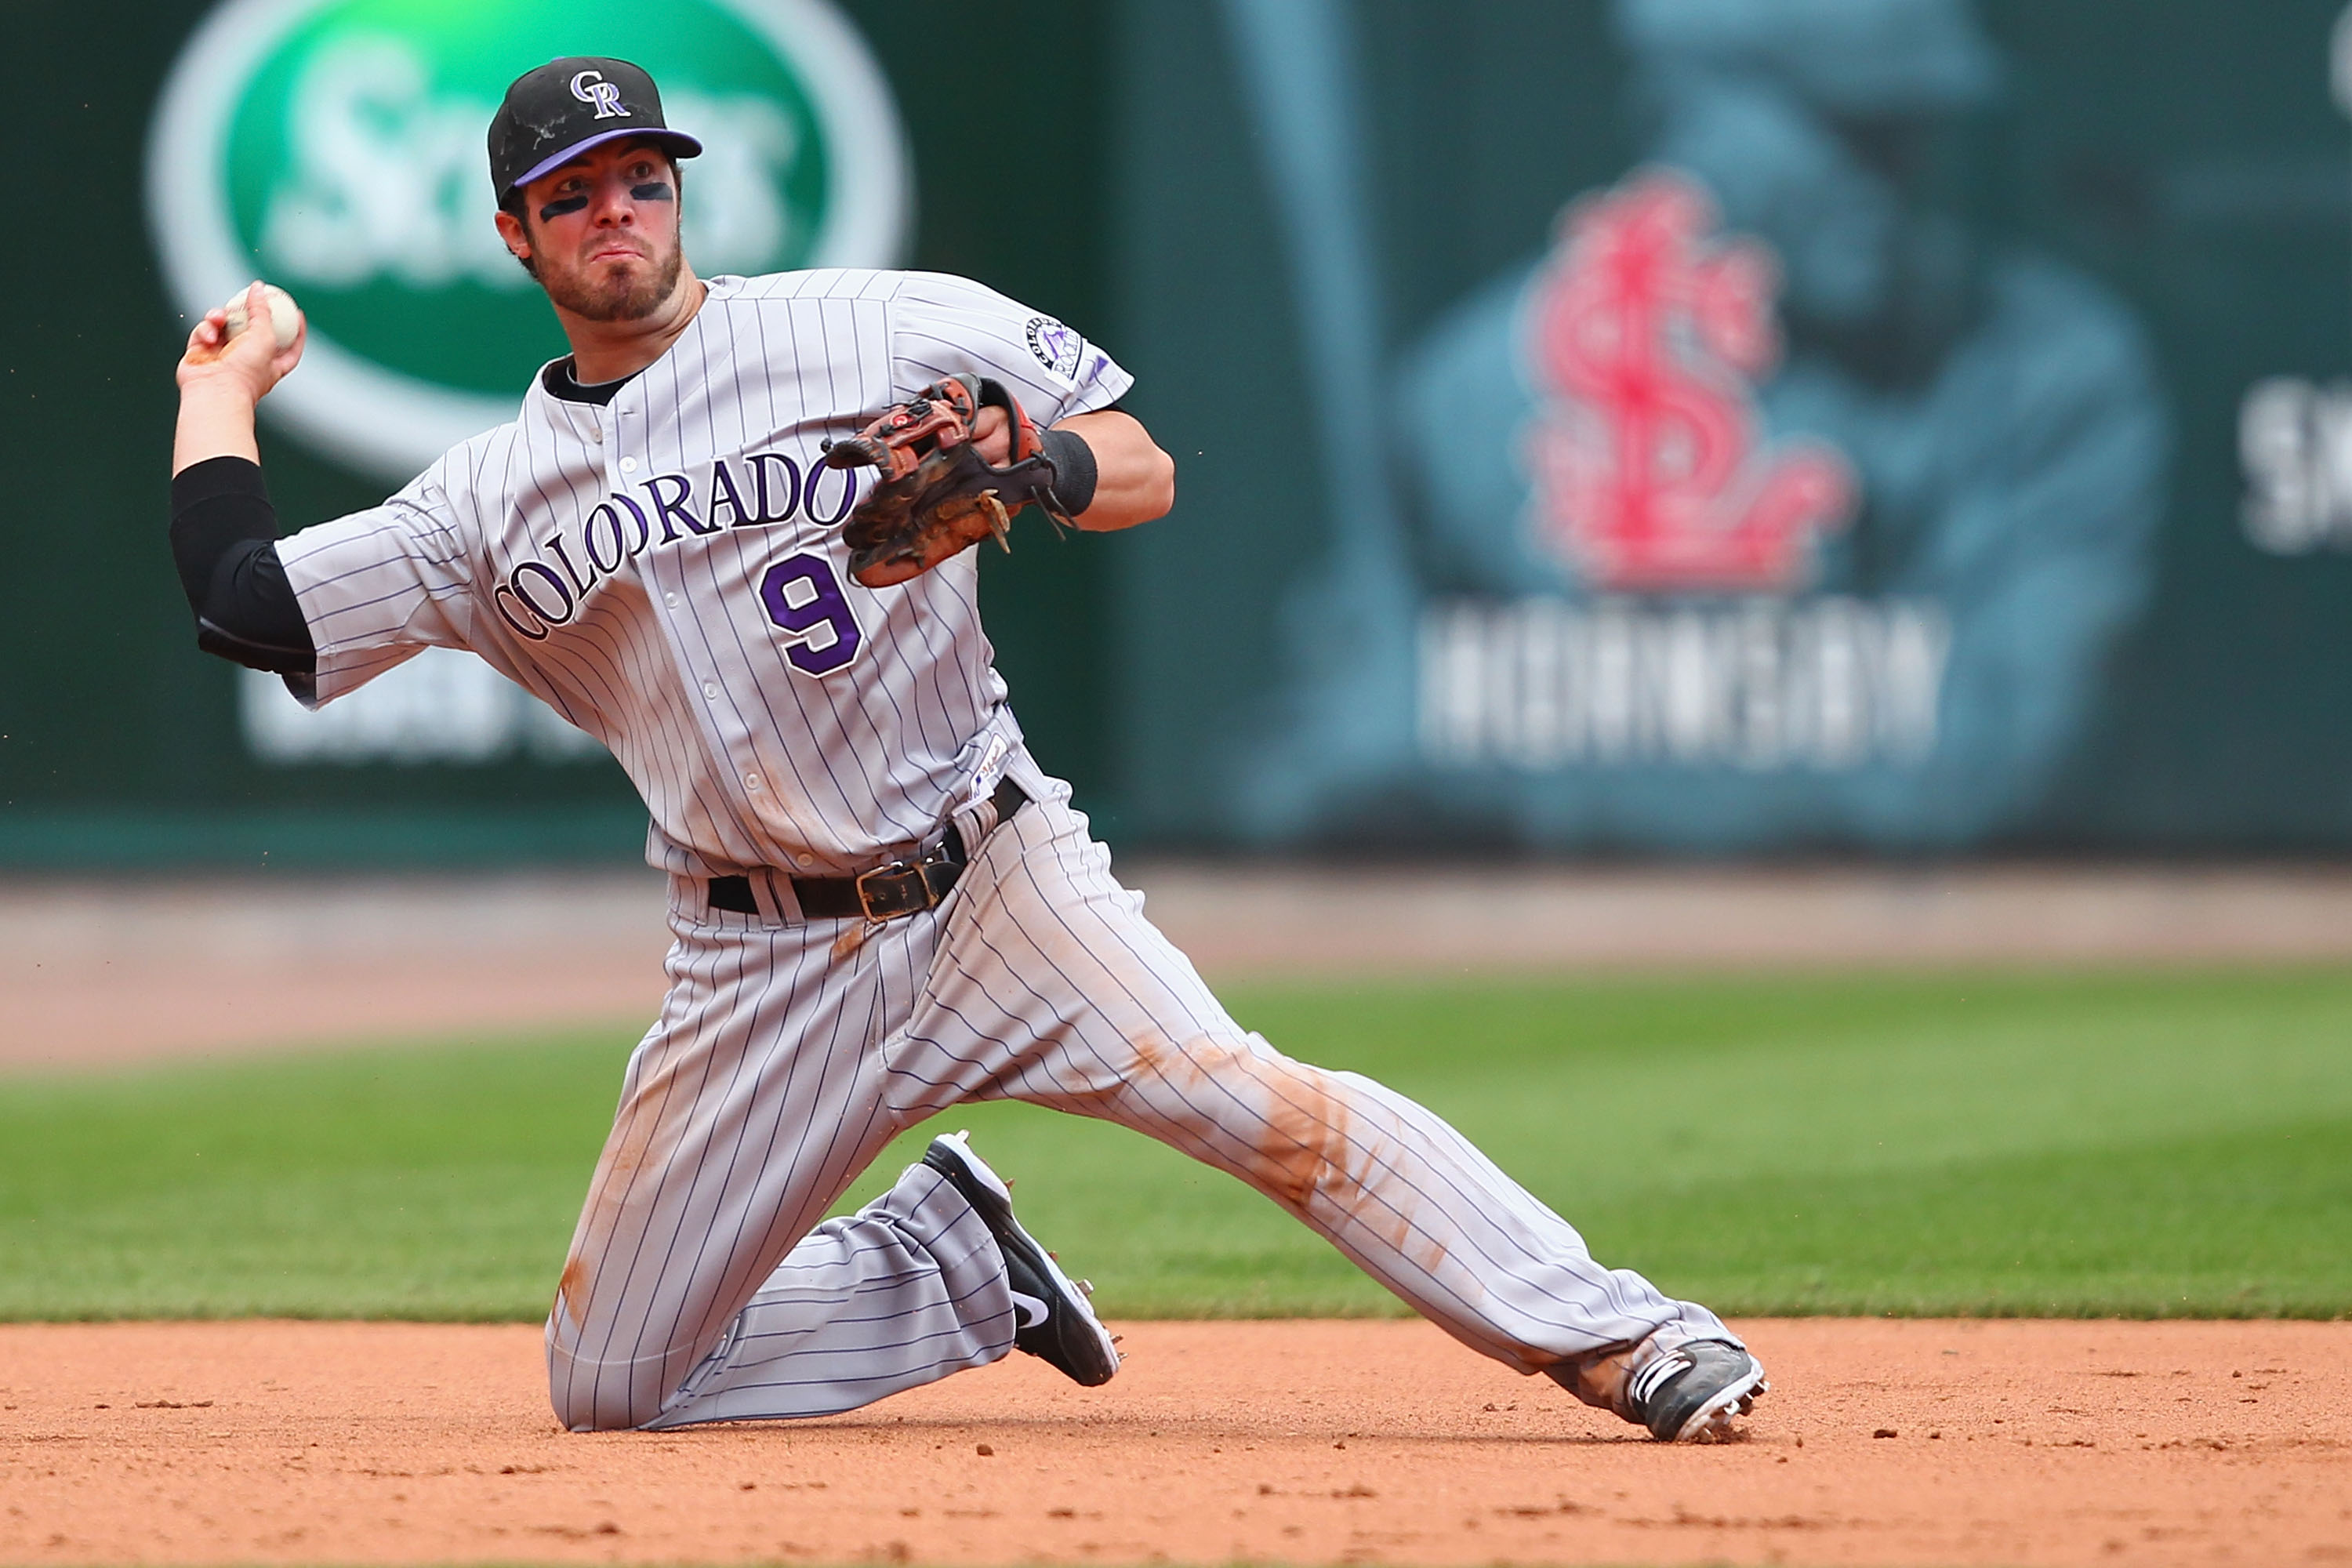 ST. LOUIS - OCTOBER 2: Ian Stewart #9 of the Colorado Rockies throws to first base against the St. Louis Cardinals at Busch Stadium on October 2, 2010 in St. Louis, Missouri.  The Cardinals beat the Rockies 1-0 in 11 innings.  (Photo by Dilip Vishwanat/Ge